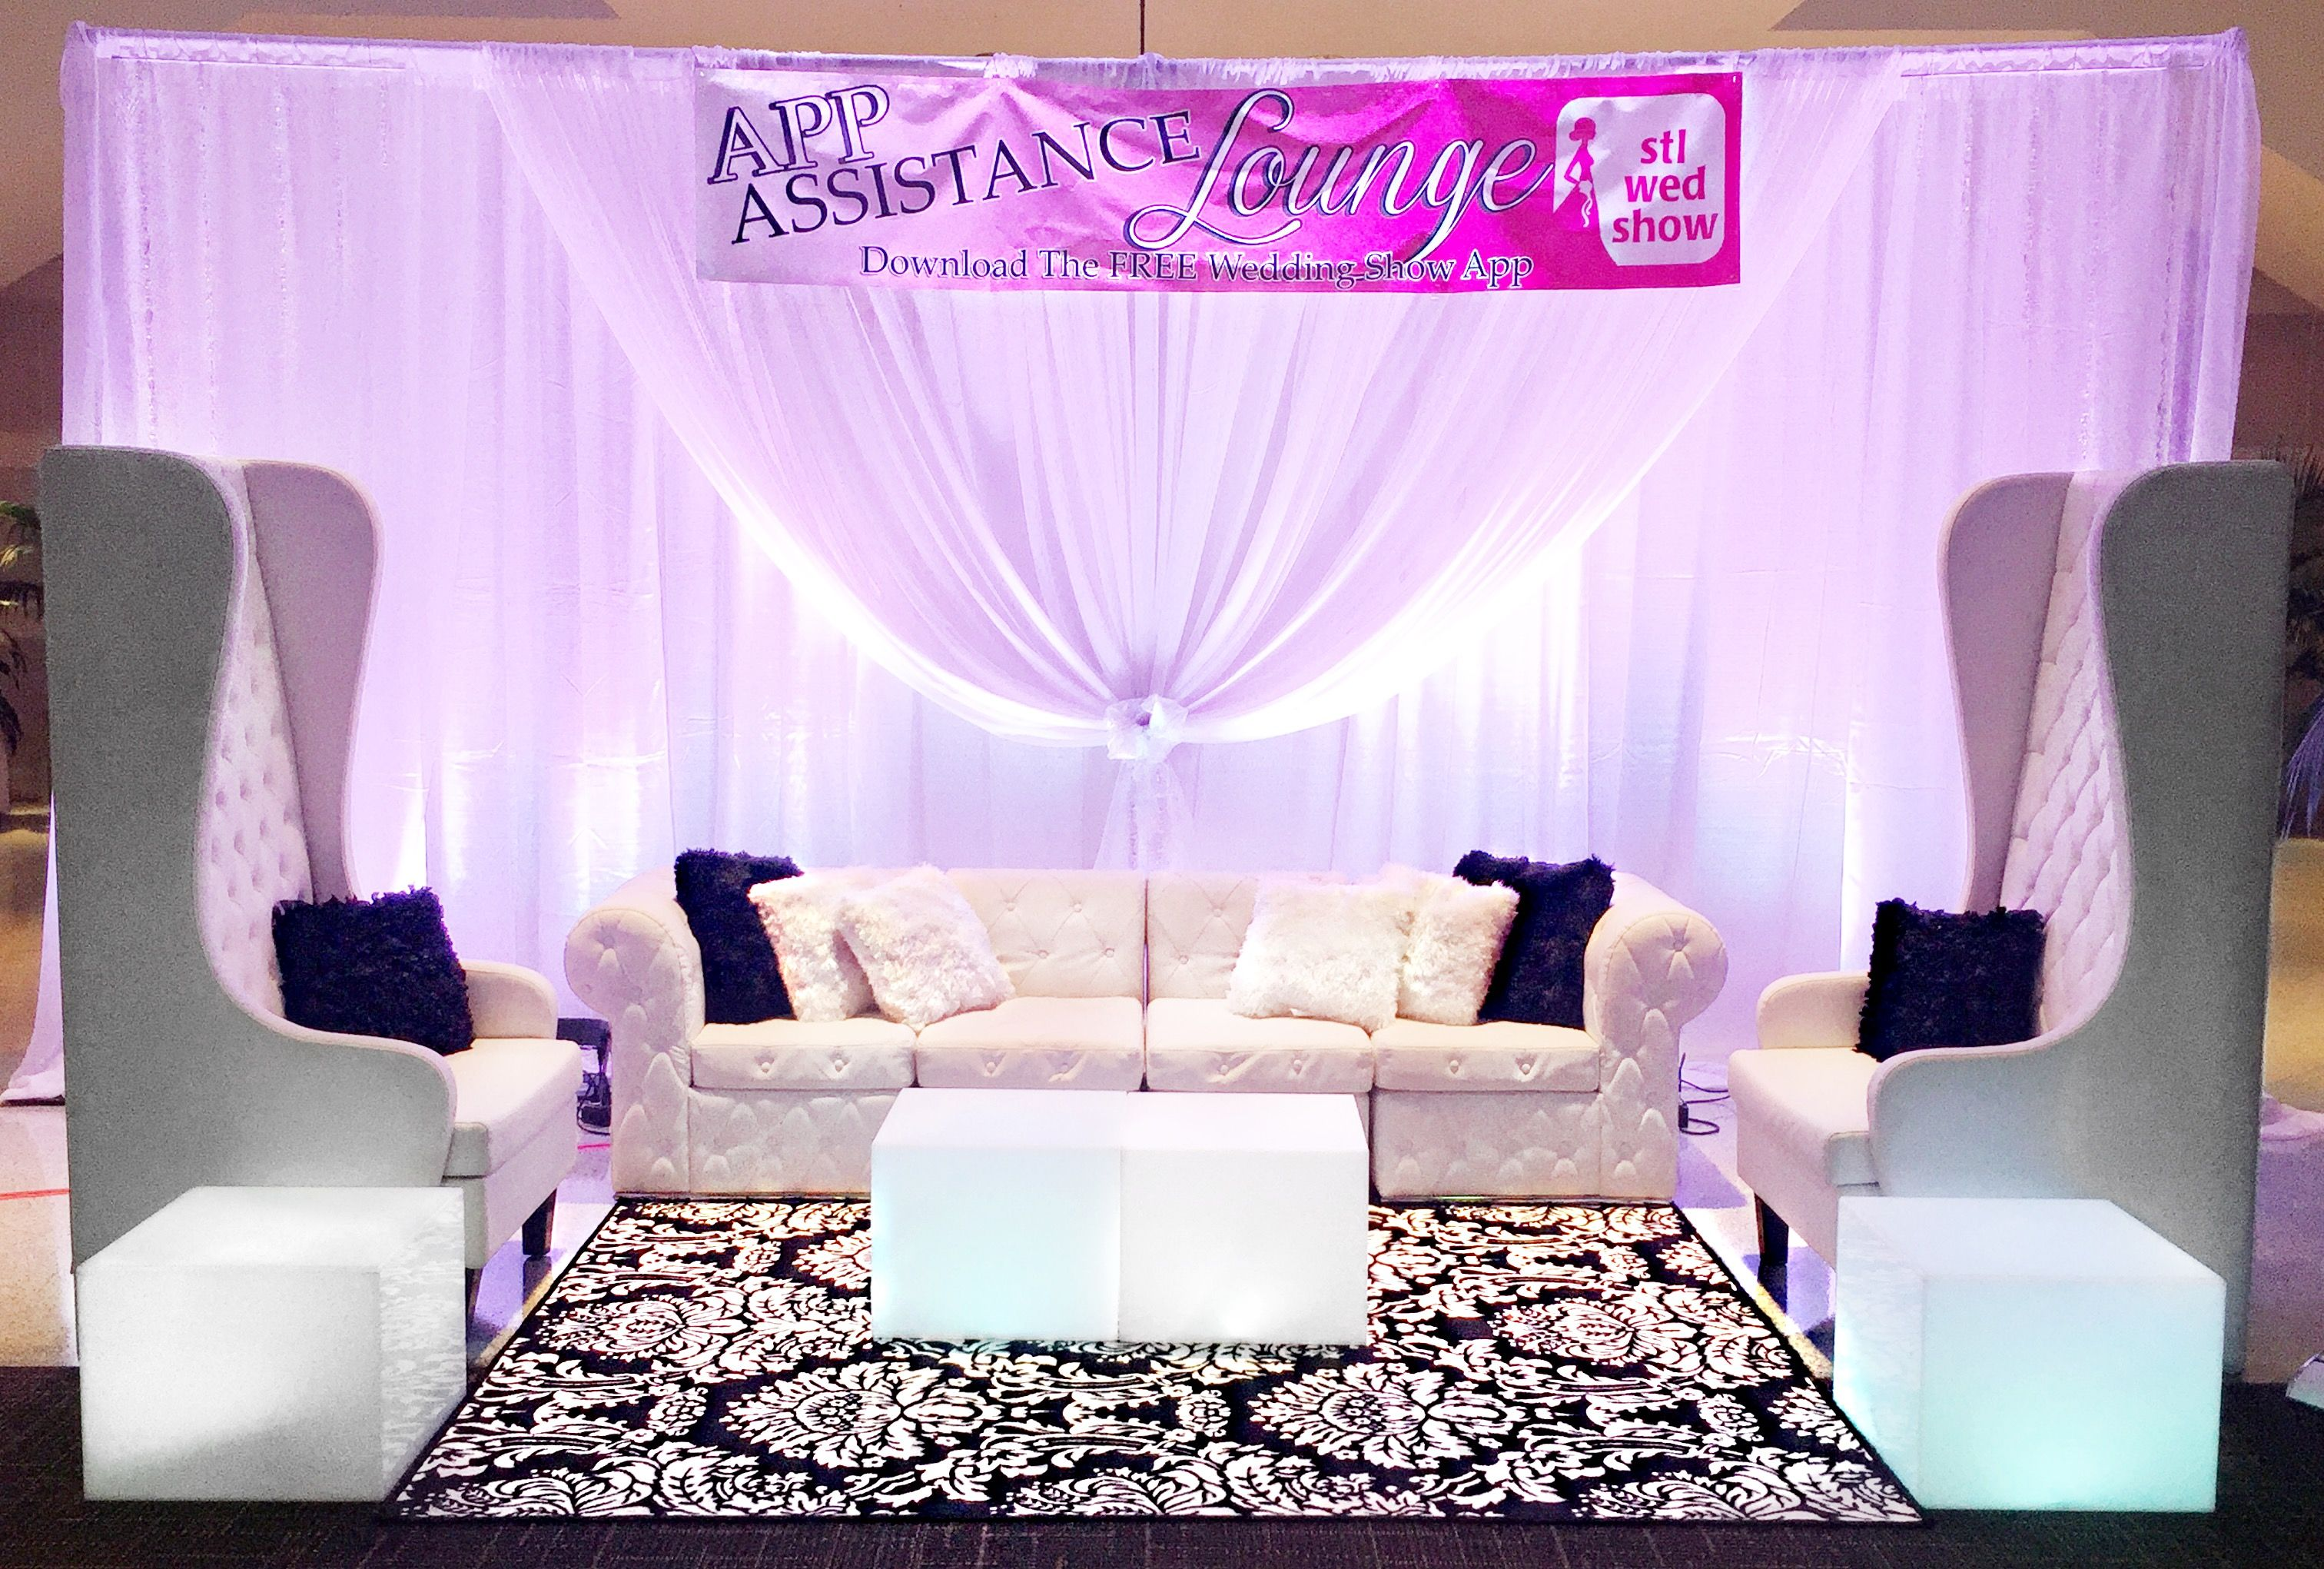 Sofa Expo Vip No Back Party Rentals In St Louis Wedding Shows